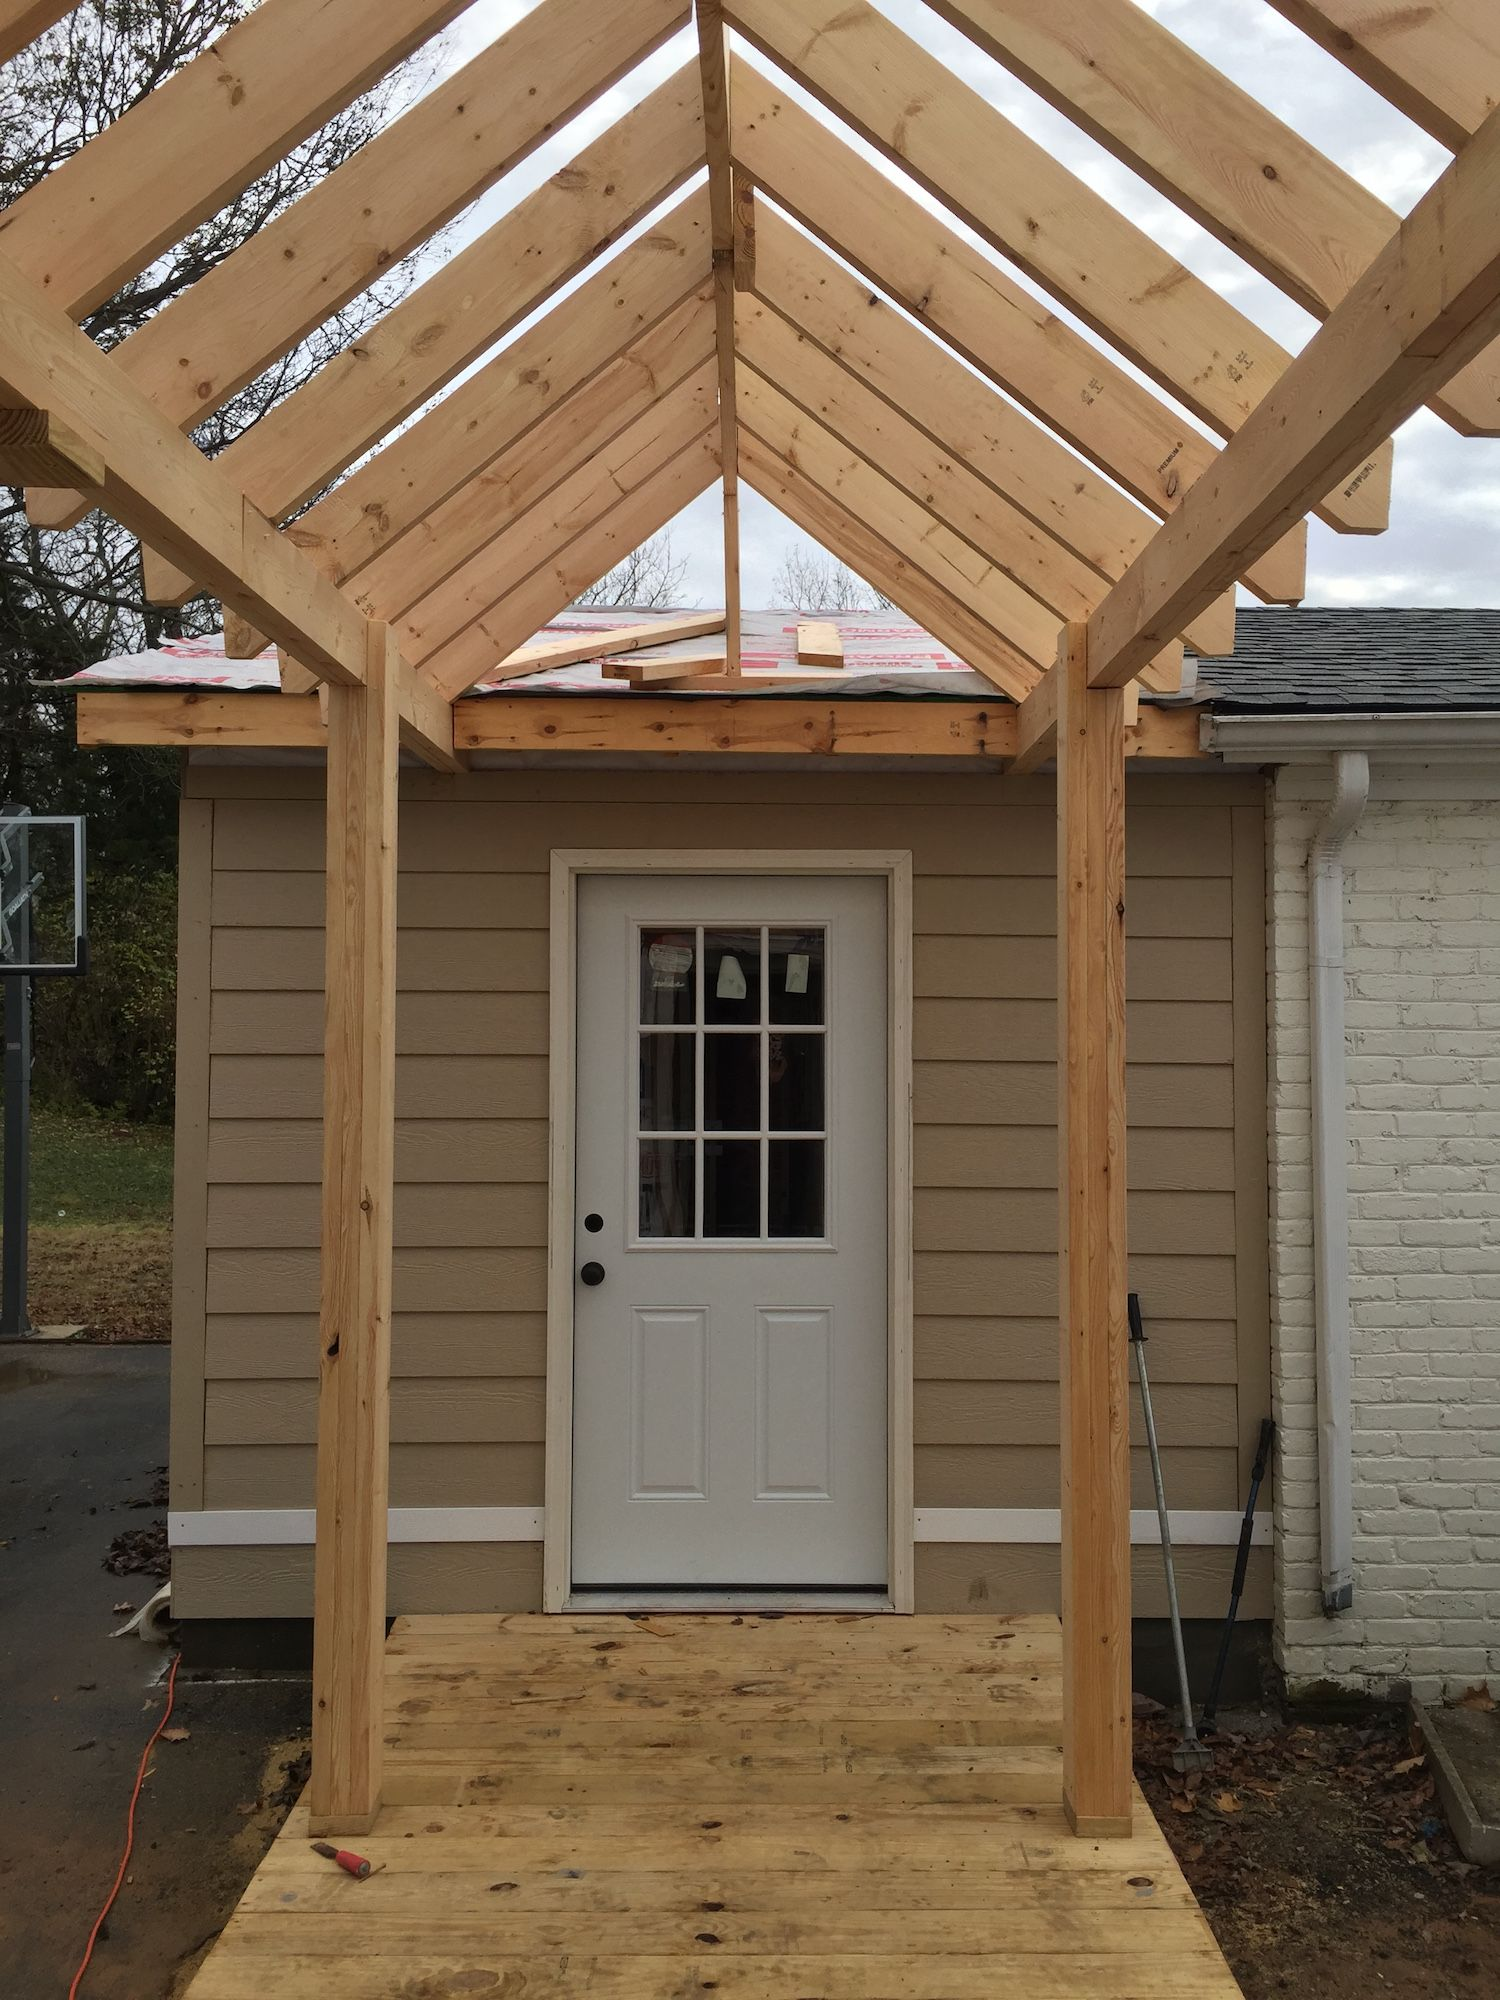 Mudroom Addition To Front Of House Yahoo Search Results: Garage Addition, Building A Deck, Metal Carports